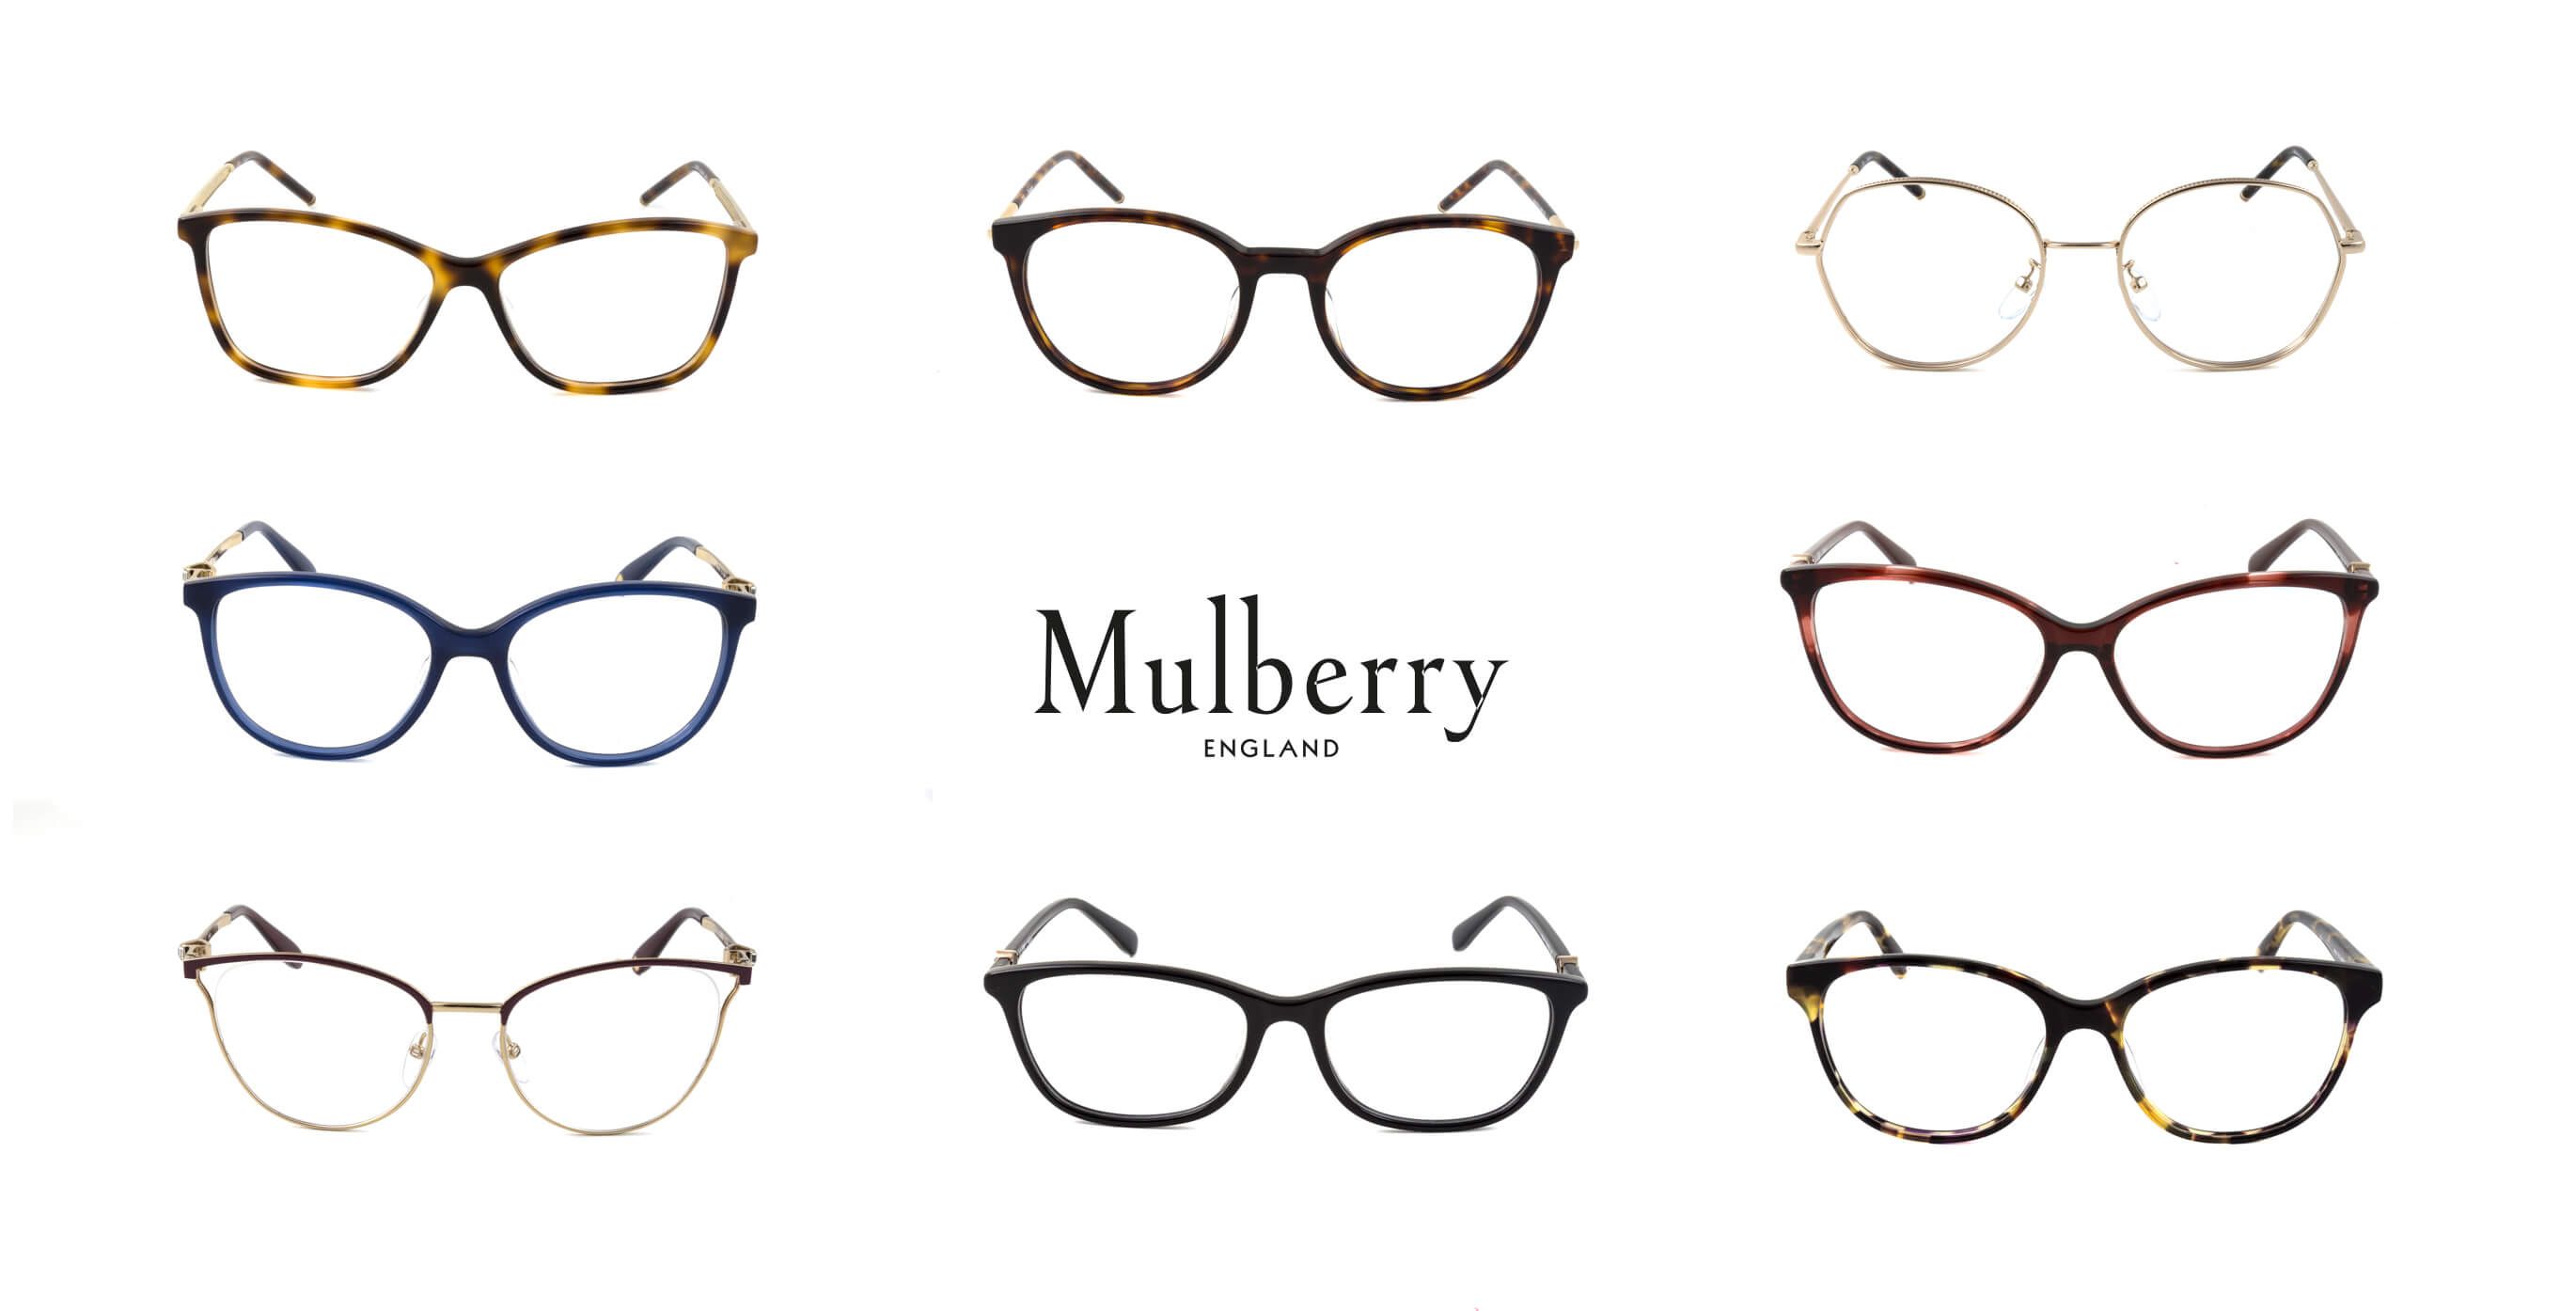 A collection of eight Mulberry glasses with clear prescription lenses.